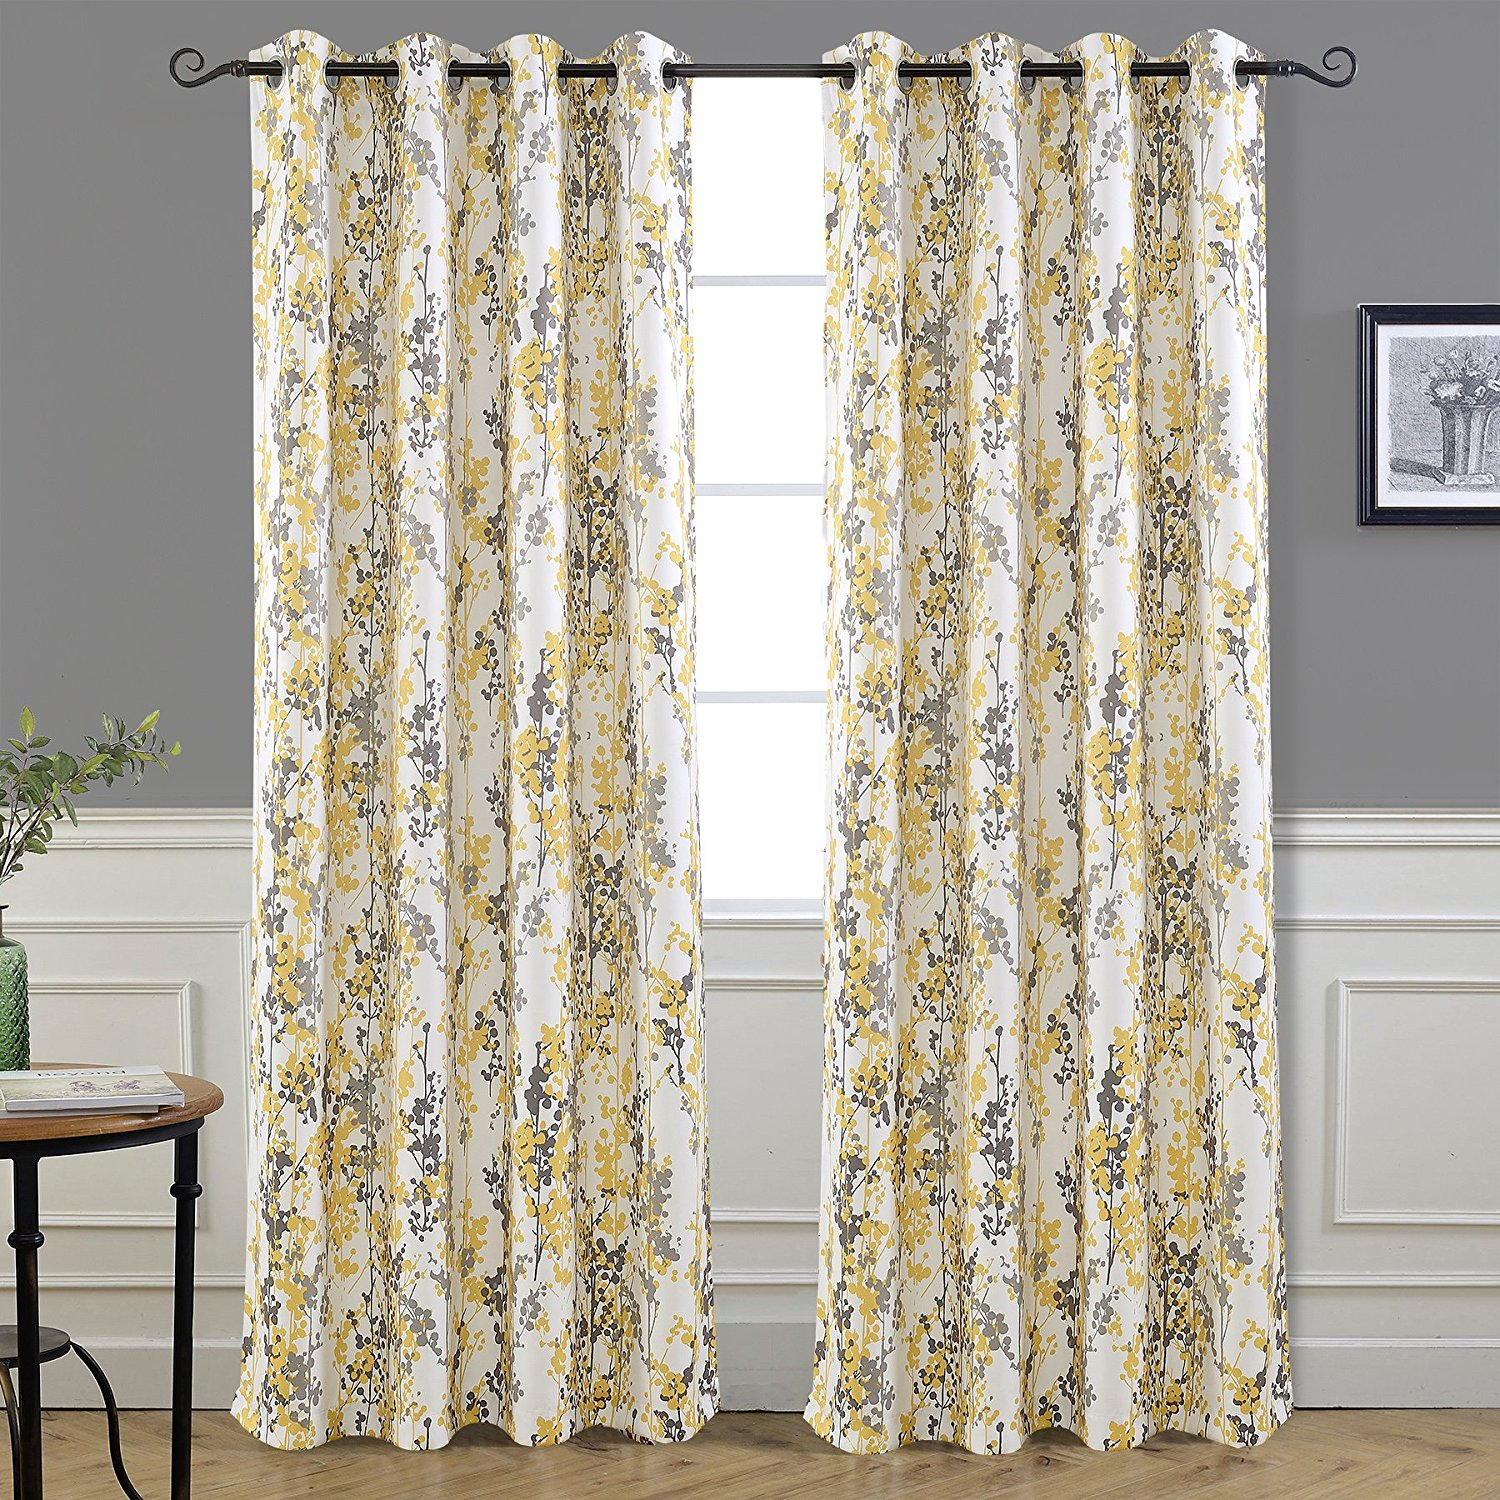 "DriftAway Leah Abstract Floral Blossom Ink Painting Room Darkening/Thermal Insulated Grommet Unlined Window Curtains, Set of Two Panels, each size 52""x84"" (Yellow/gray)"